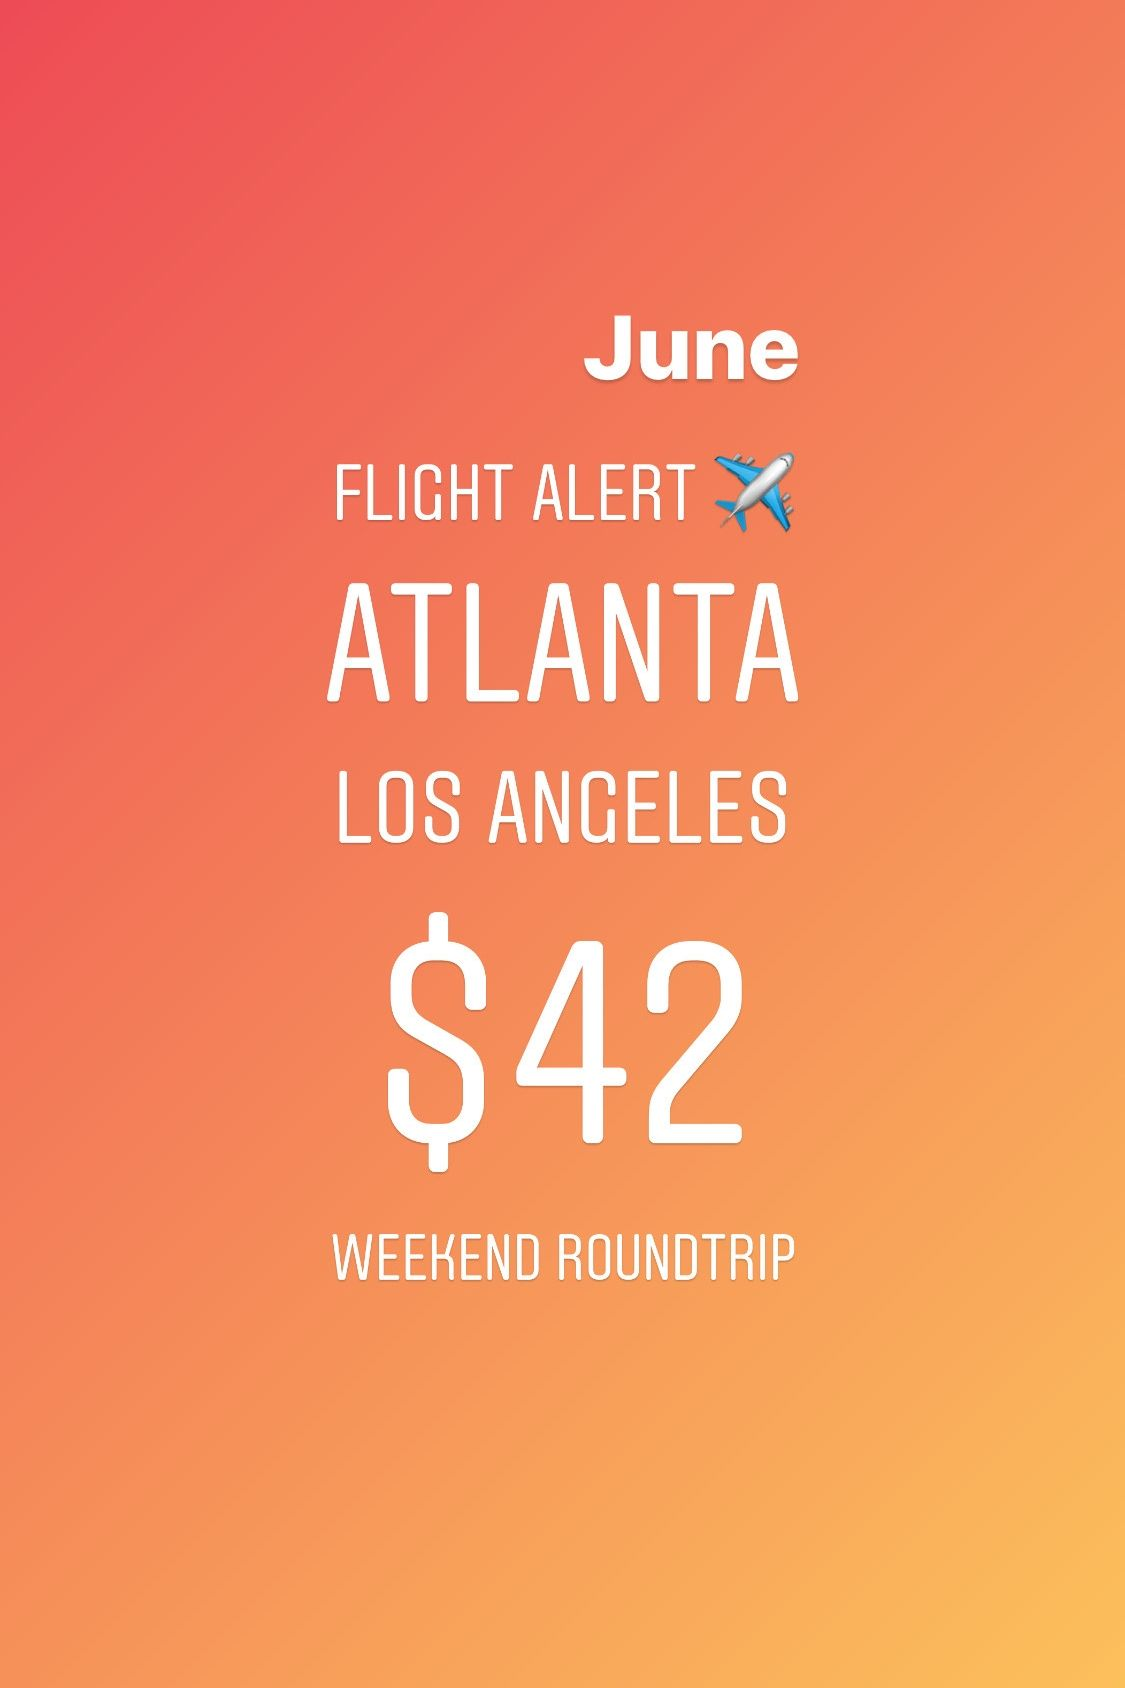 #Airfaredeals are time-sensitive. Spending at least an hour everyday monitoring flights for different dates is time-consuming. Don't miss the best airfare deals from your city. Sign up for Flight Alerts to get the best airfare deals from your airport delivered to your phone. Get notified first about the best deals on flight tickets with Flight Alerts by Kobza Travel. Check the link in bio to start your #FREEtrial today.  #flightalert #flightdeals #cheapflight #cheapflights #roundtrip #atlanta